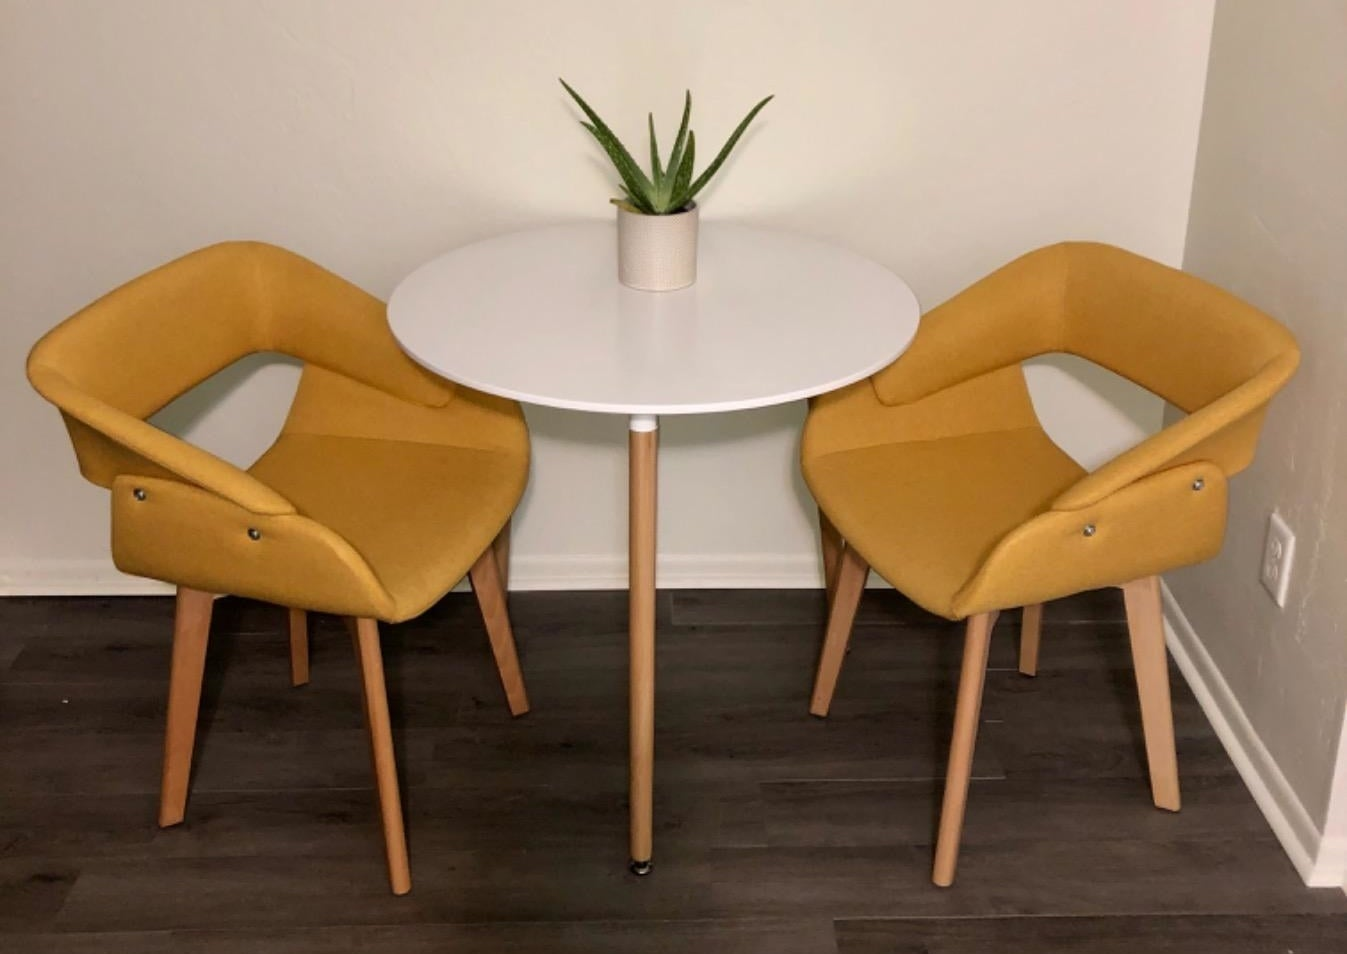 A reviewer's photo of the chairs in yellow